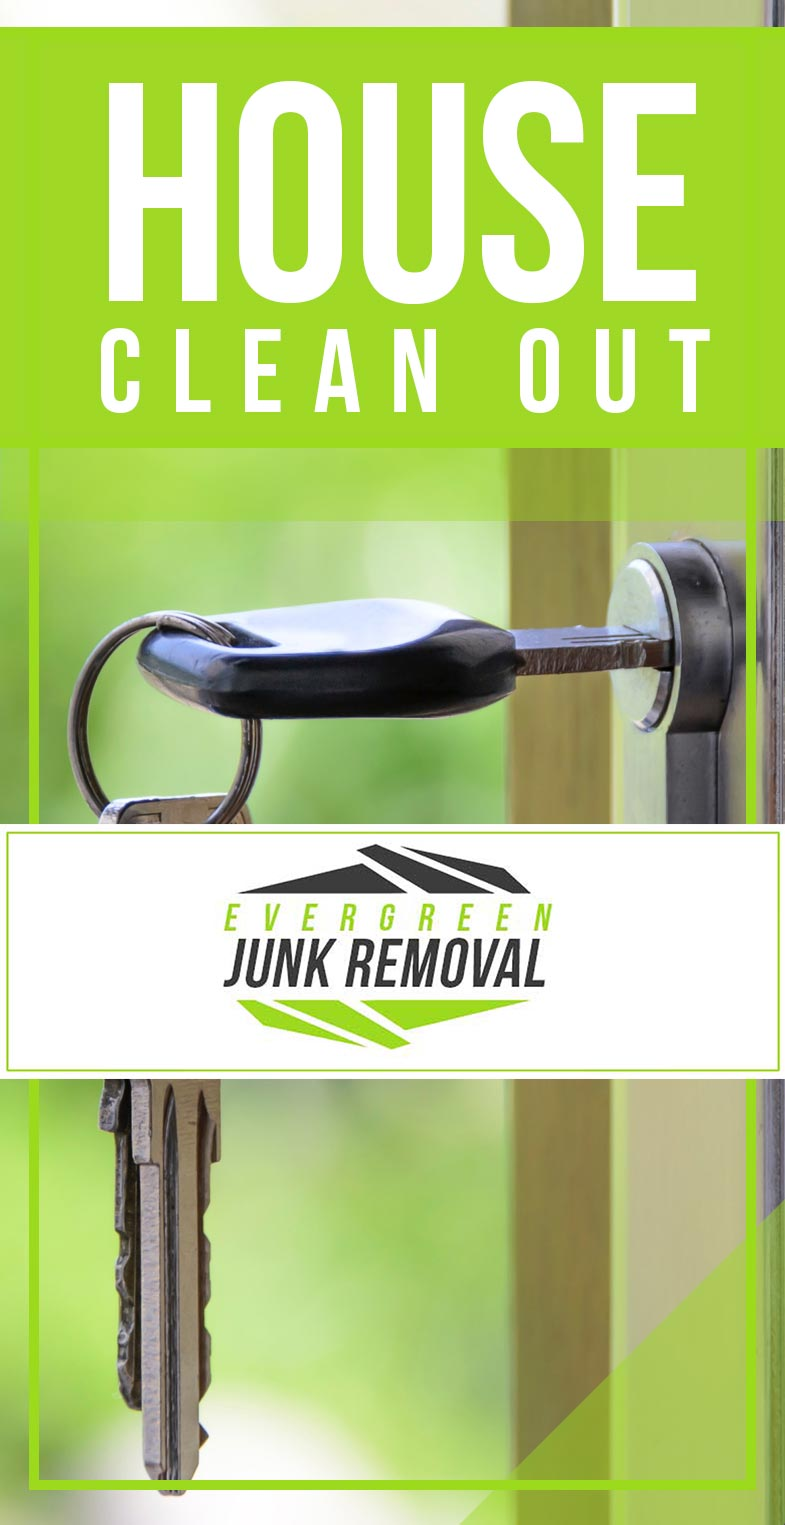 Junk Removal Hallandale Beach House Clean Out